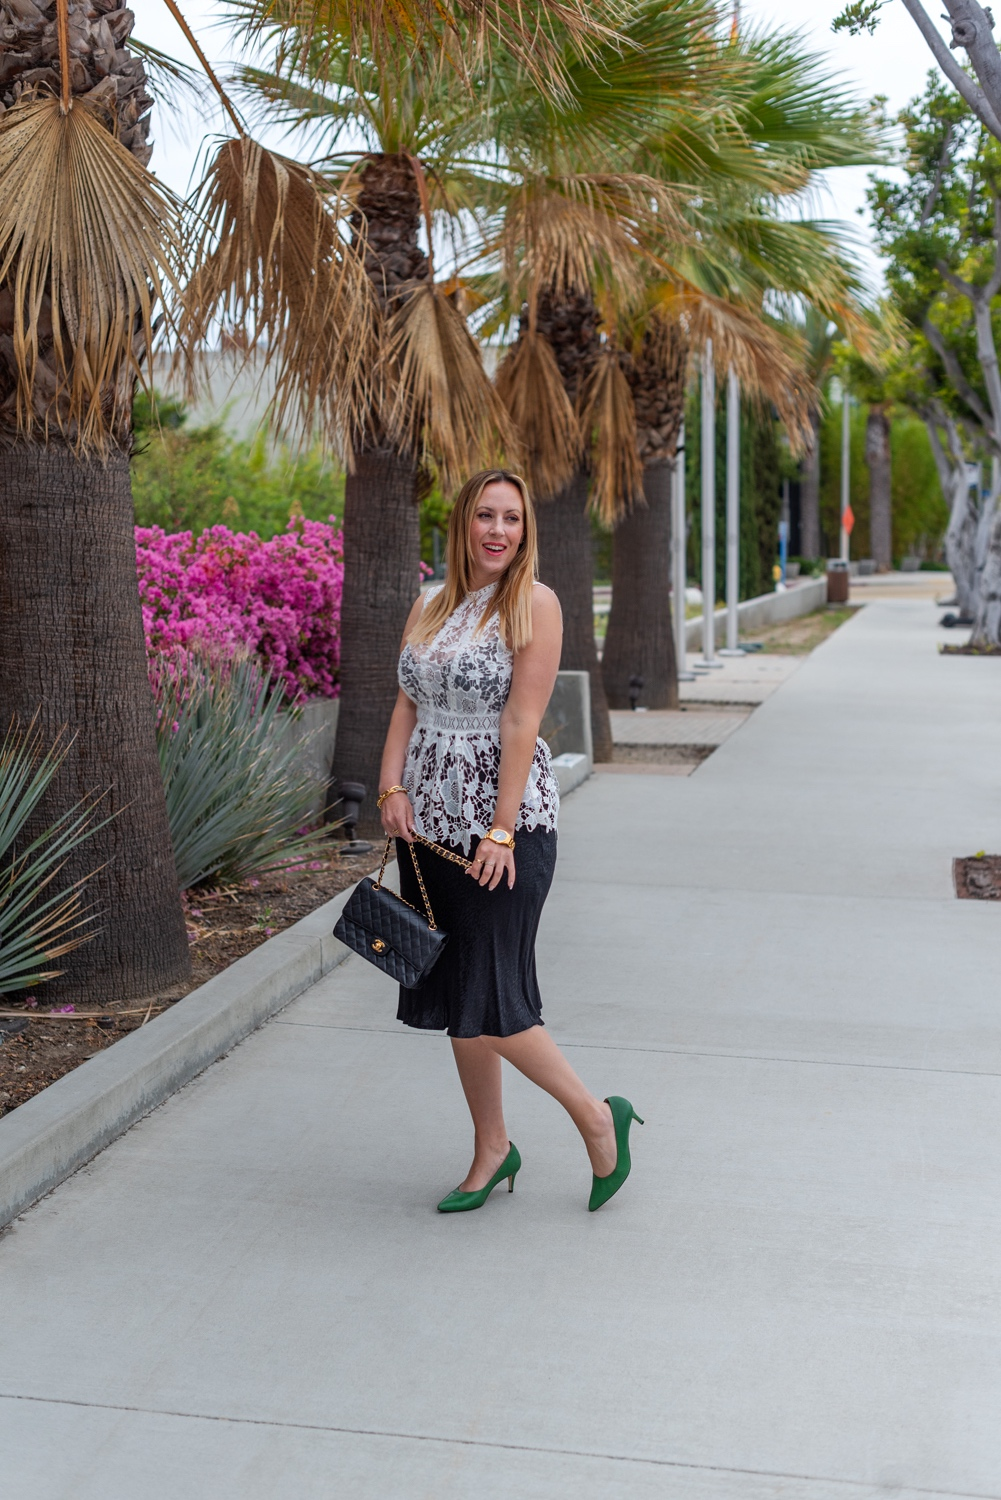 wear from work to happy hour 3 | What to Wear by popular LA fashion blog, Posh in Progress: image of a woman wearing a white lace top, black skirt gold watch, gold link bracelet, green heels, and black quilted Chanel bag.